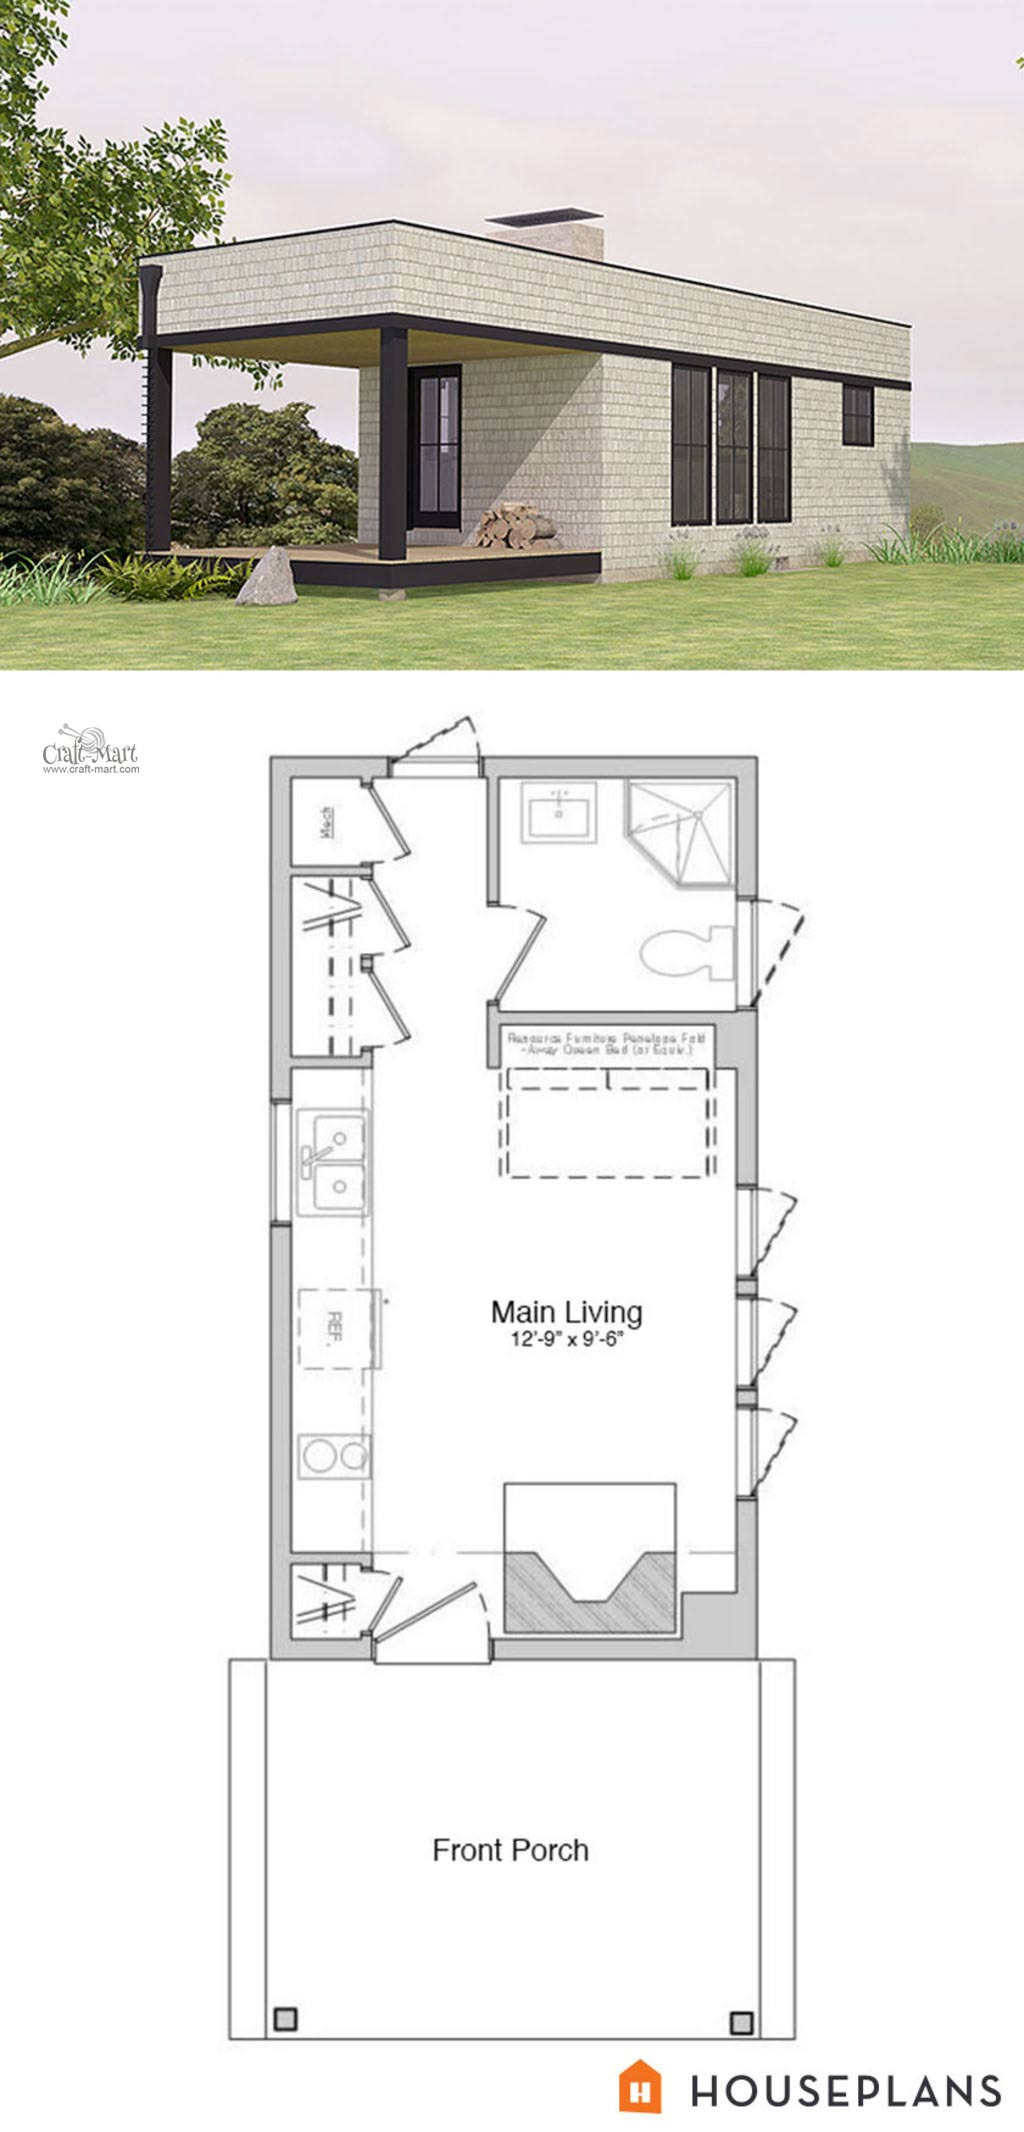 Plans for A Tiny House Inspirational 27 Adorable Free Tiny House Floor Plans Craft Mart